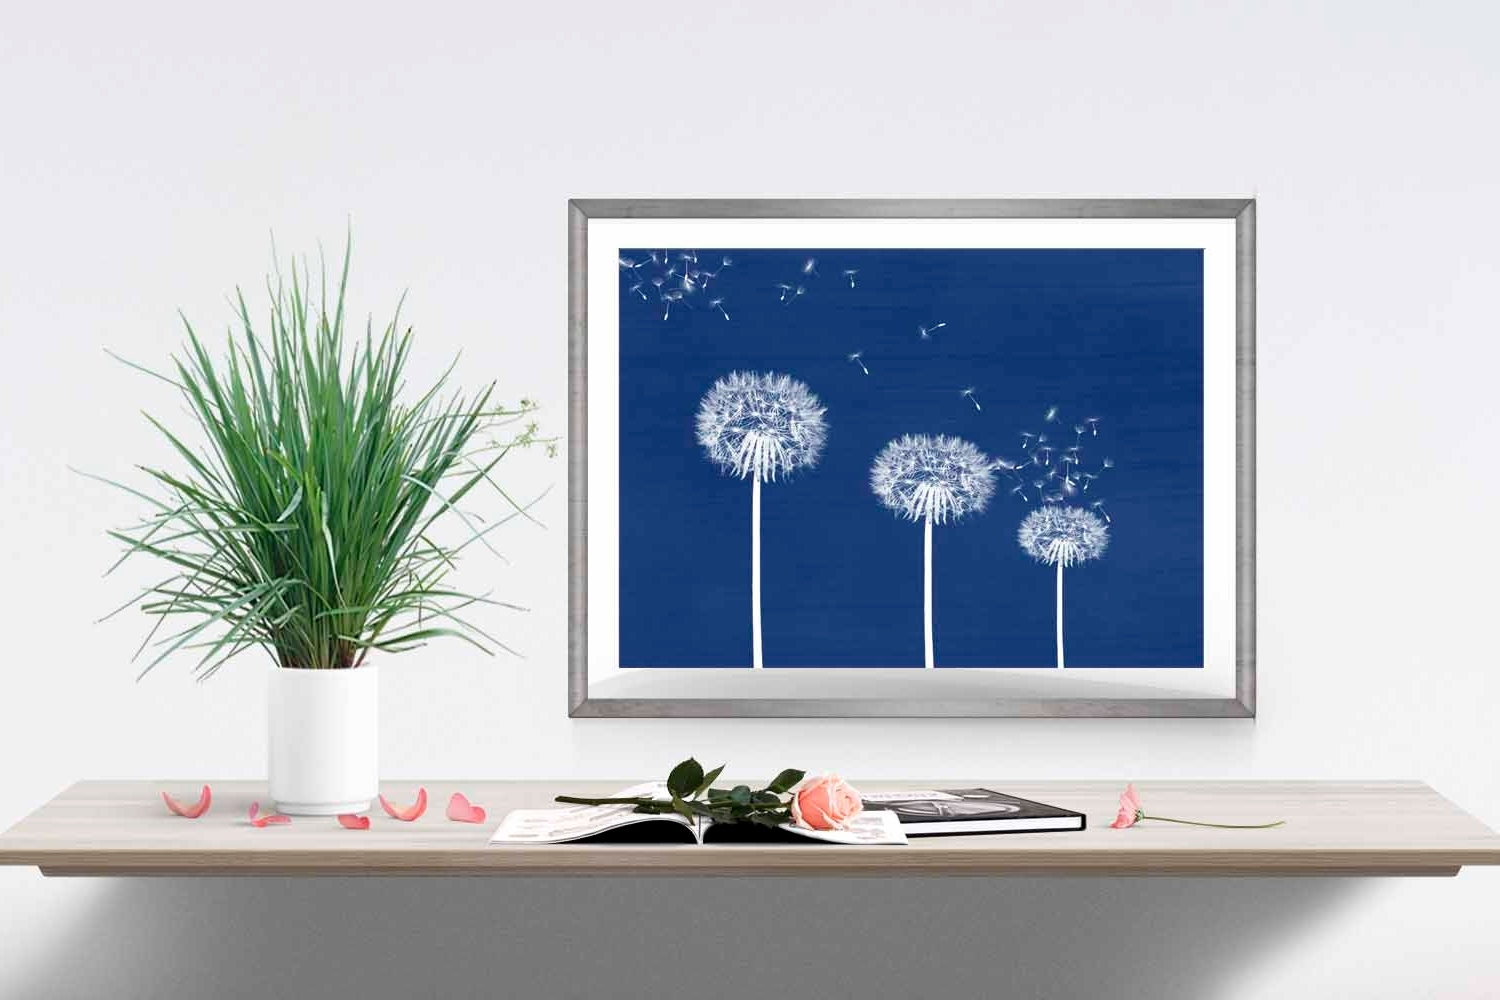 Blue Wall Art For Bedroom – Blogtipsworld With Best And Newest Navy Blue Wall Art (View 10 of 15)